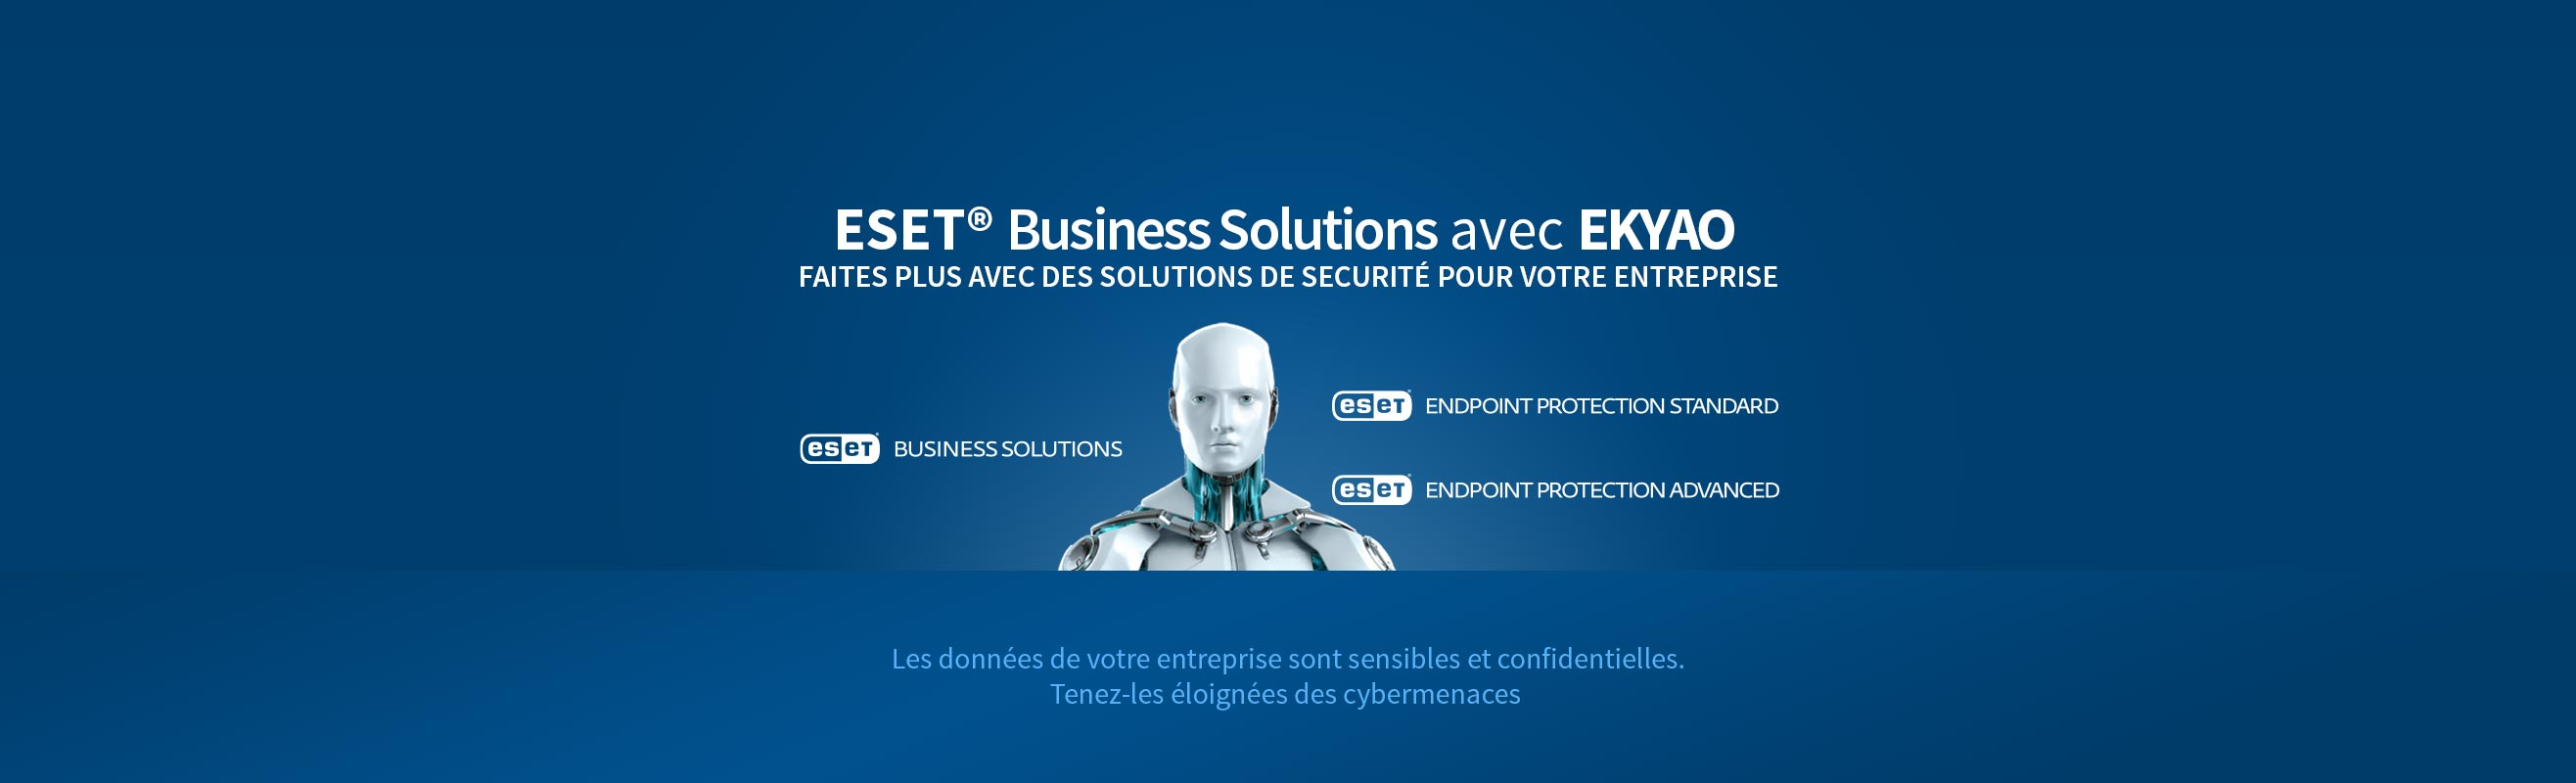 ESET Antivirus Solutions Business avec EKYAO Business